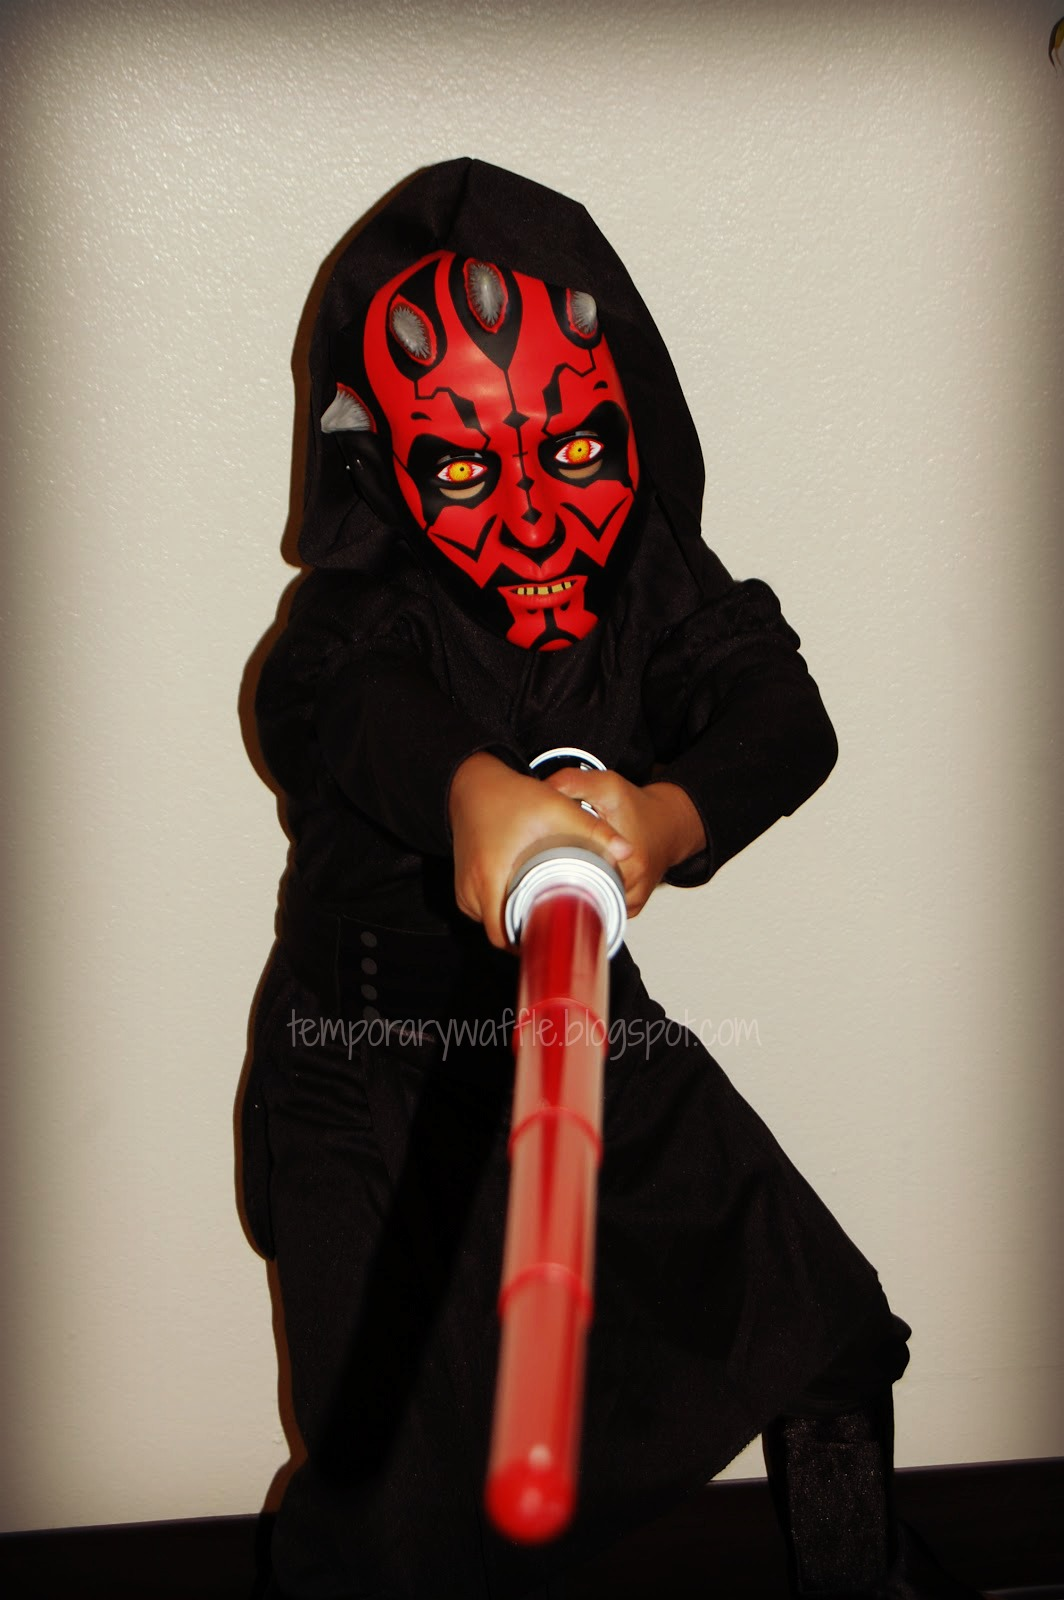 Star Wars Darth Maul Costume Review!! & Temporary Waffle: Star Wars Darth Maul Costume Review!!